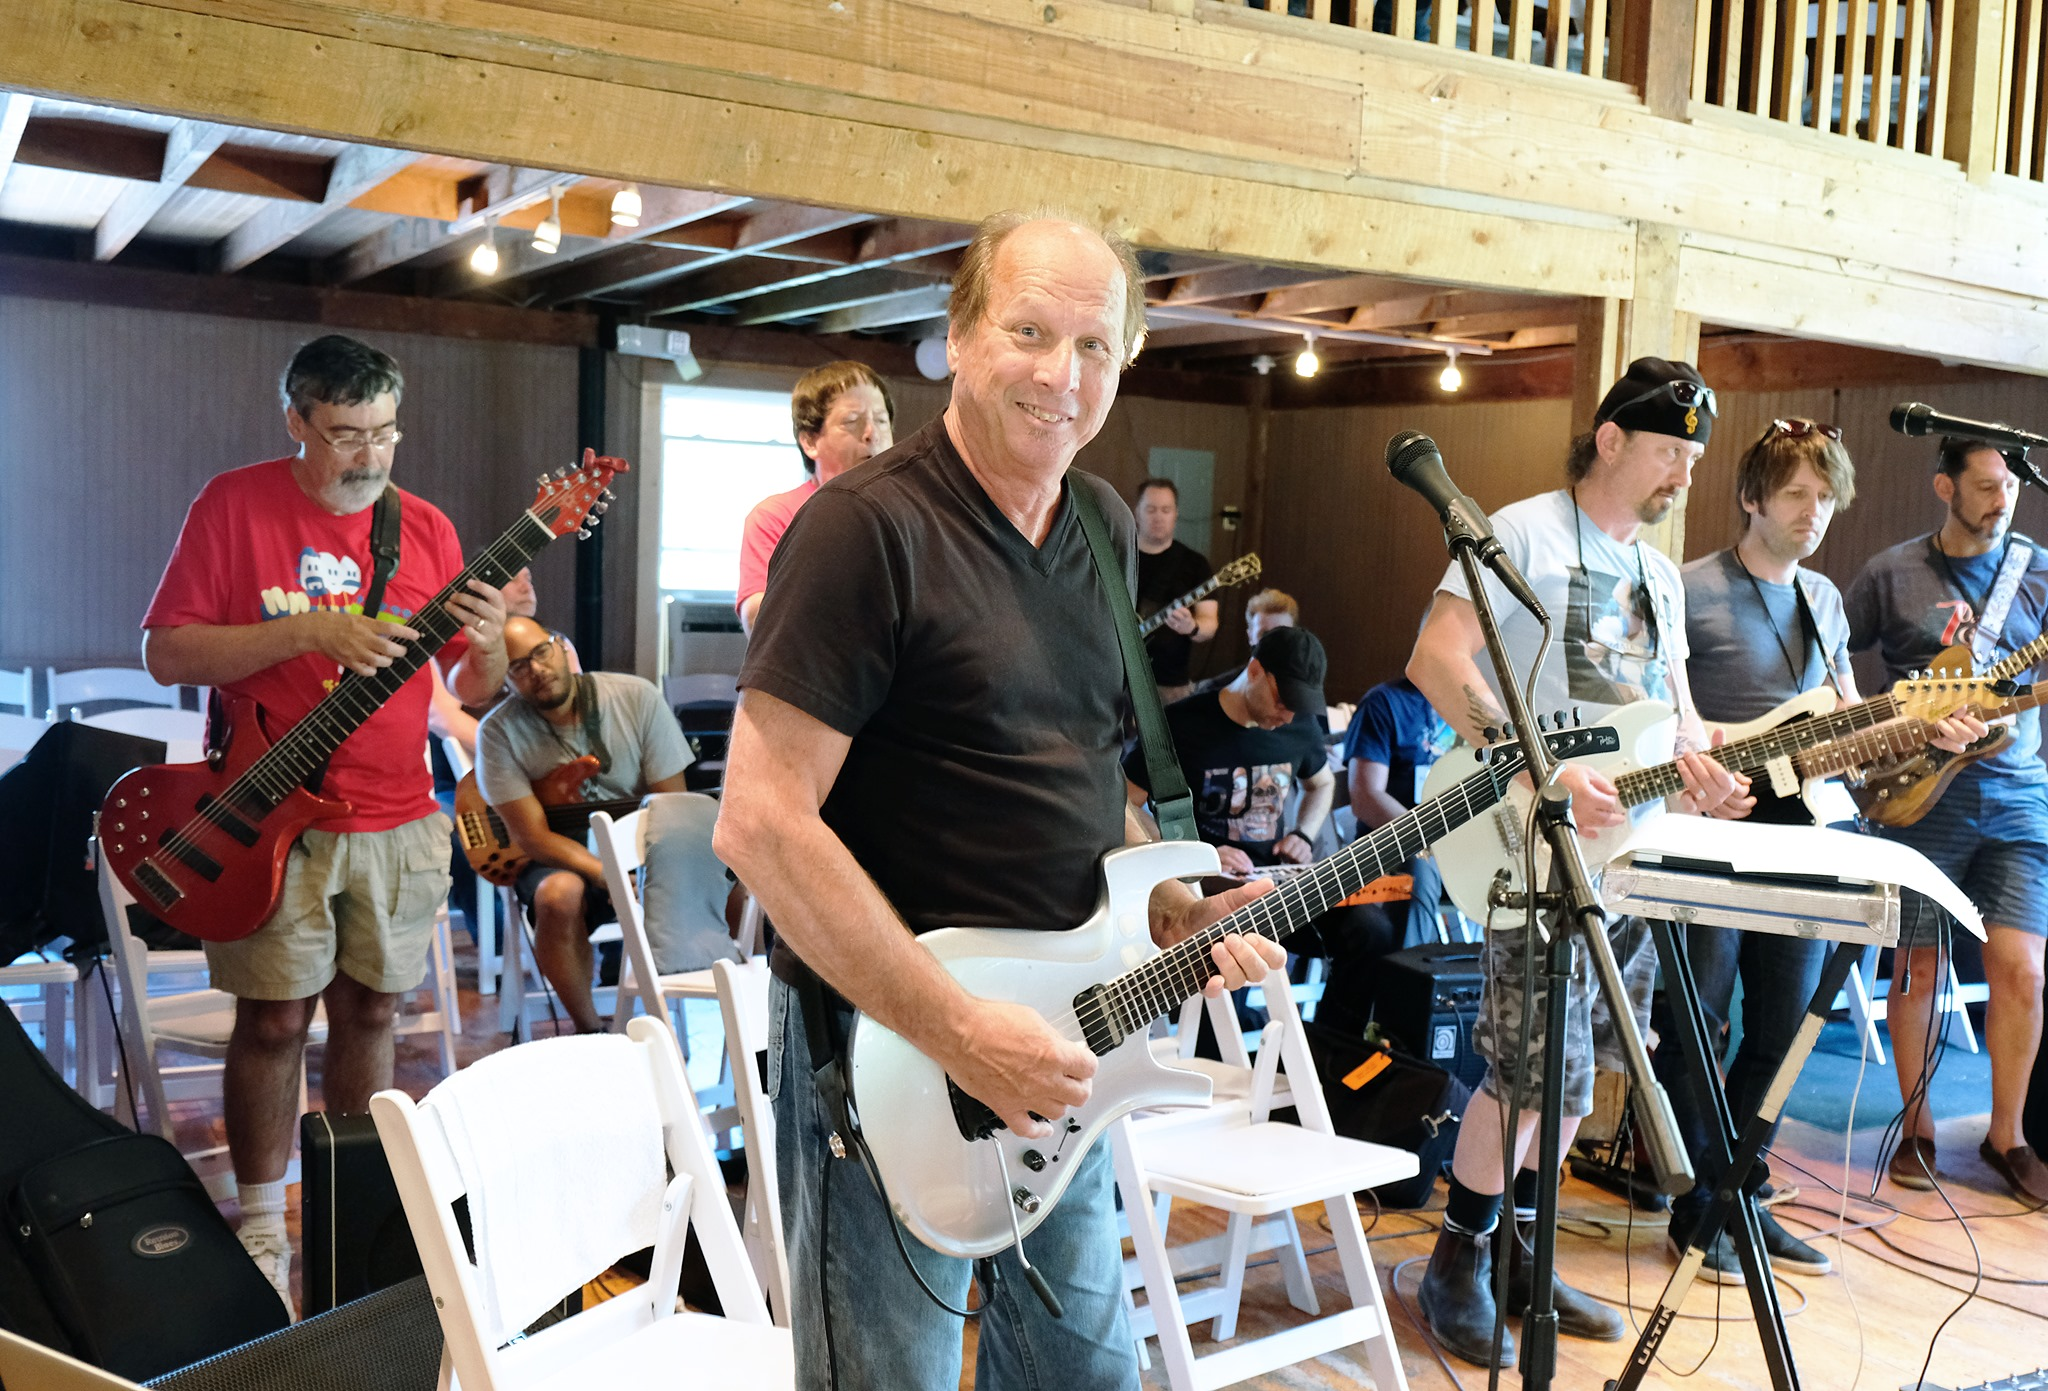 Adrian Belew at Rehearsal